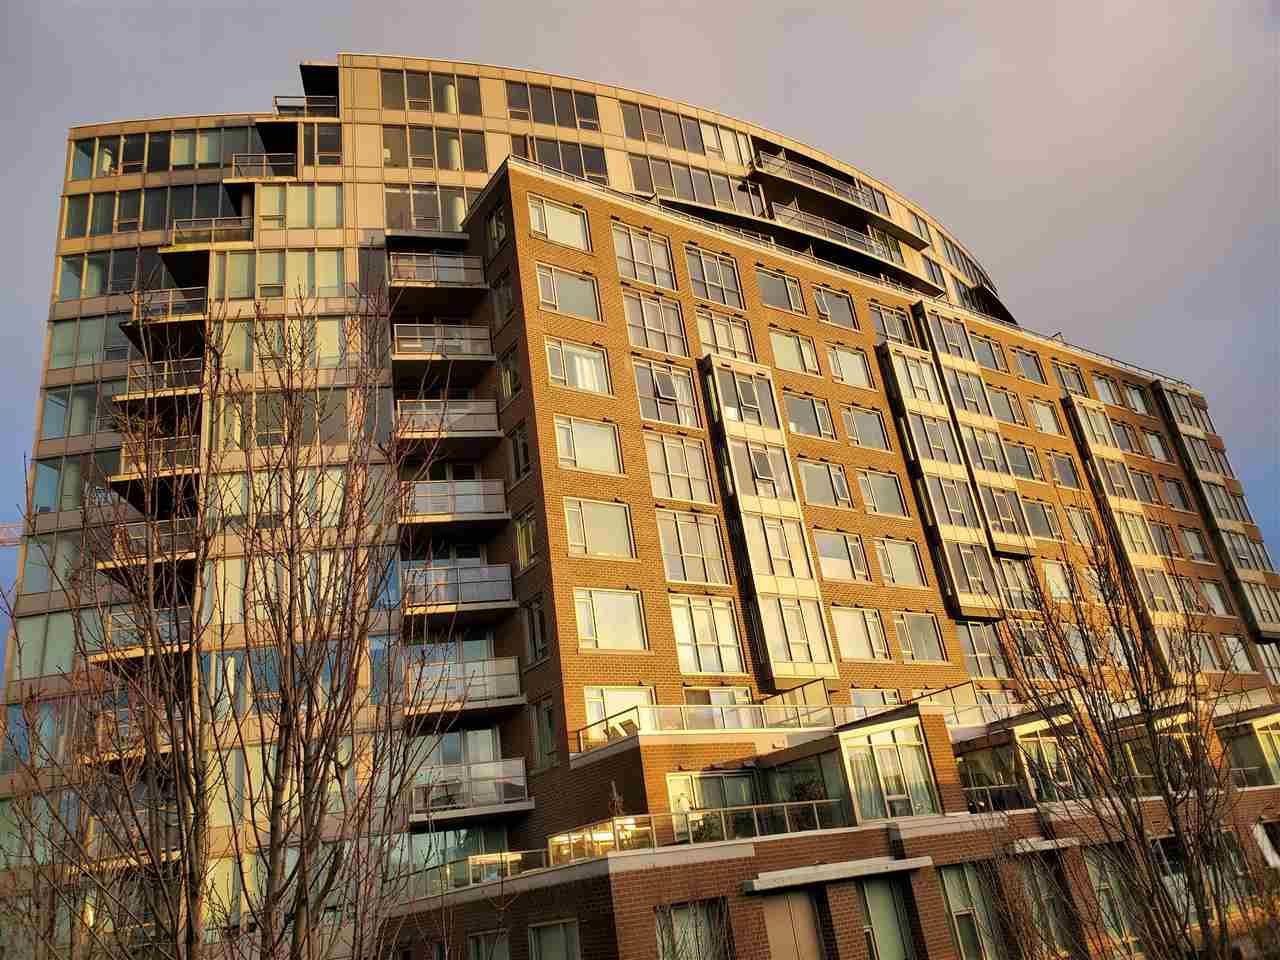 """Main Photo: 1013 445 W 2ND Avenue in Vancouver: False Creek Condo for sale in """"MAYNARD BLOCK"""" (Vancouver West)  : MLS®# R2550291"""